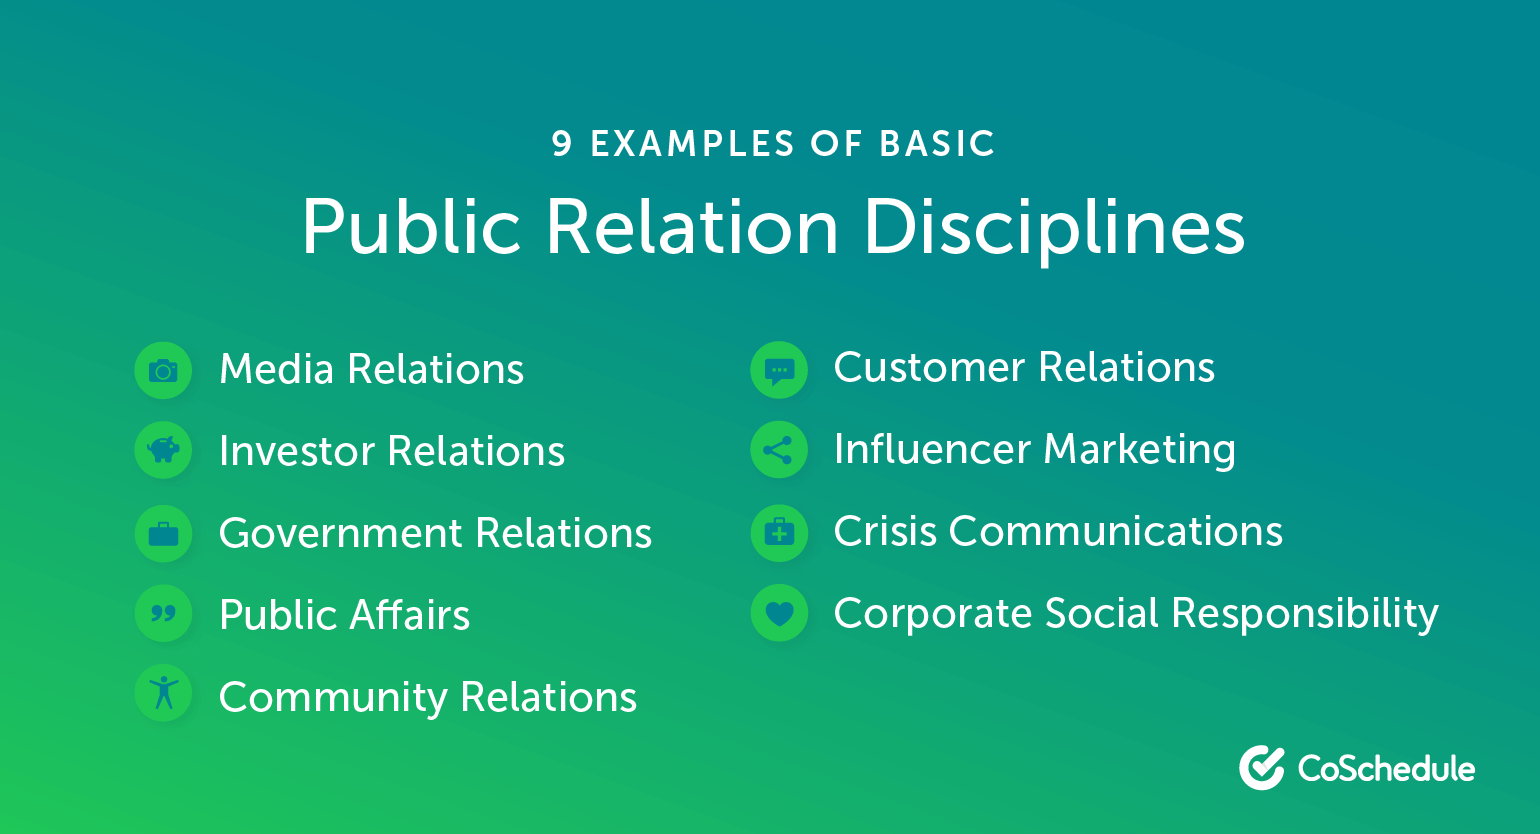 9 Examples of Basic Public Relations Disciplines